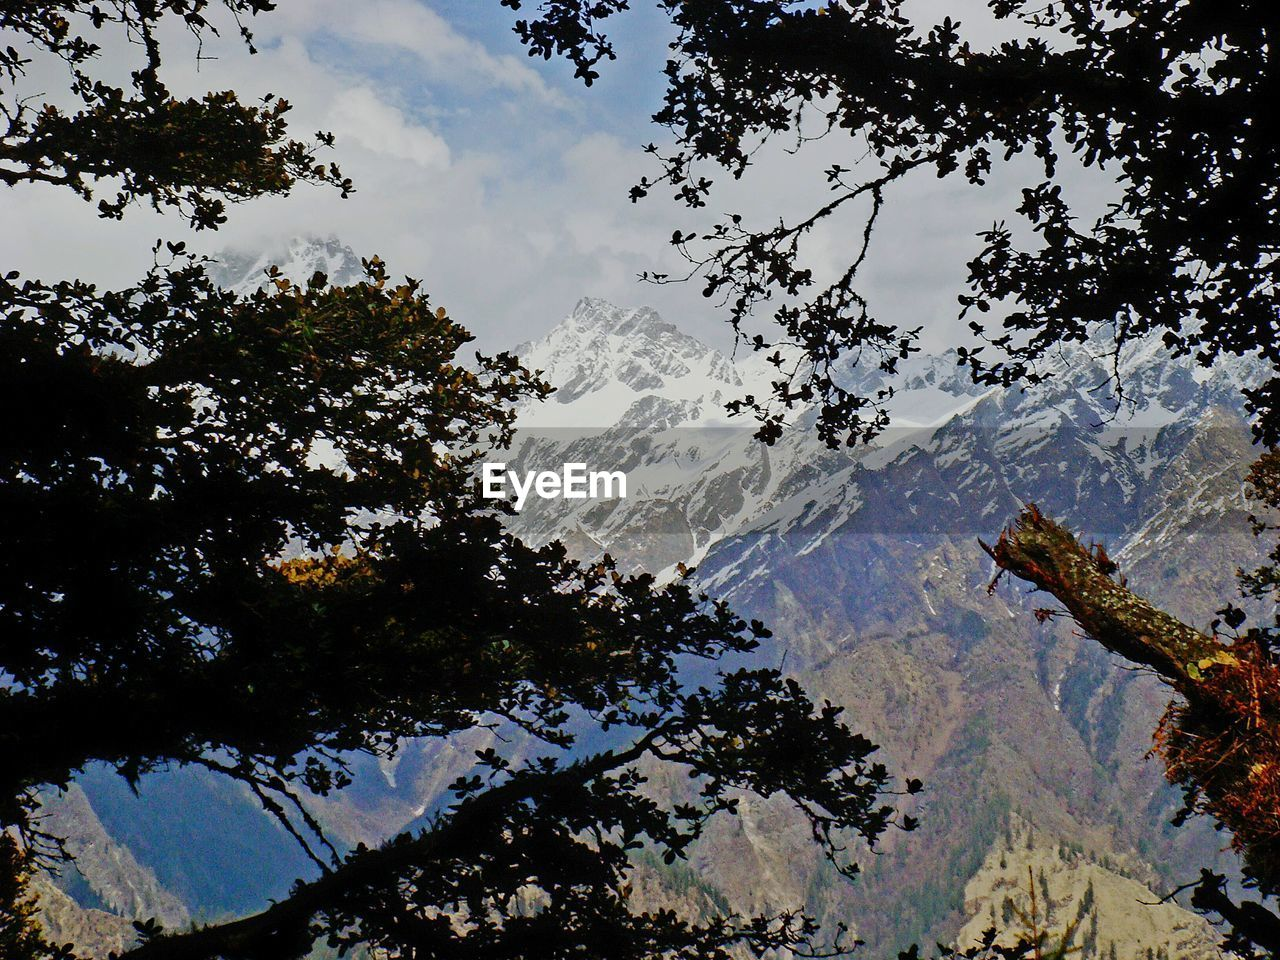 tree, mountain, beauty in nature, nature, low angle view, sky, scenics, no people, outdoors, day, branch, tranquility, snow, mountain range, high